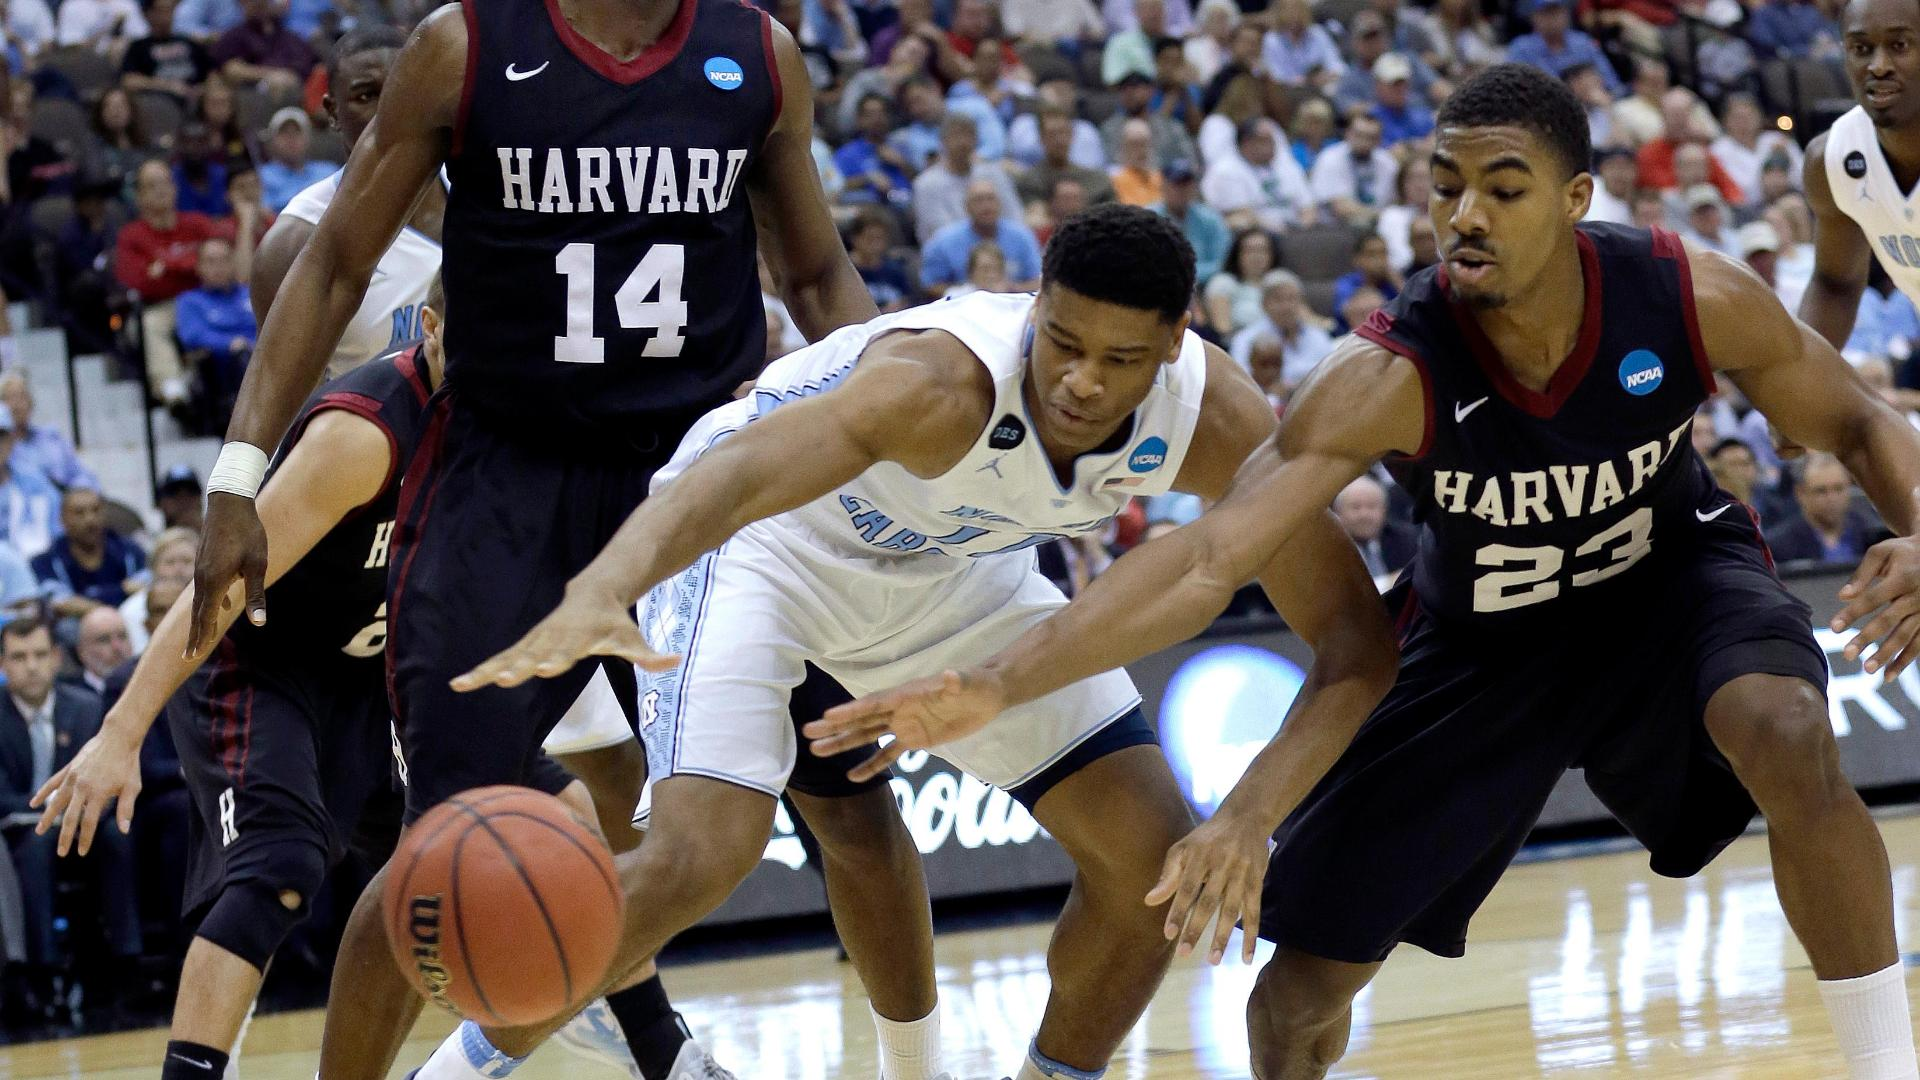 http://a.espncdn.com/media/motion/2015/0320/dm_150319_ncb_brennan_on_unc_harvard119/dm_150319_ncb_brennan_on_unc_harvard119.jpg